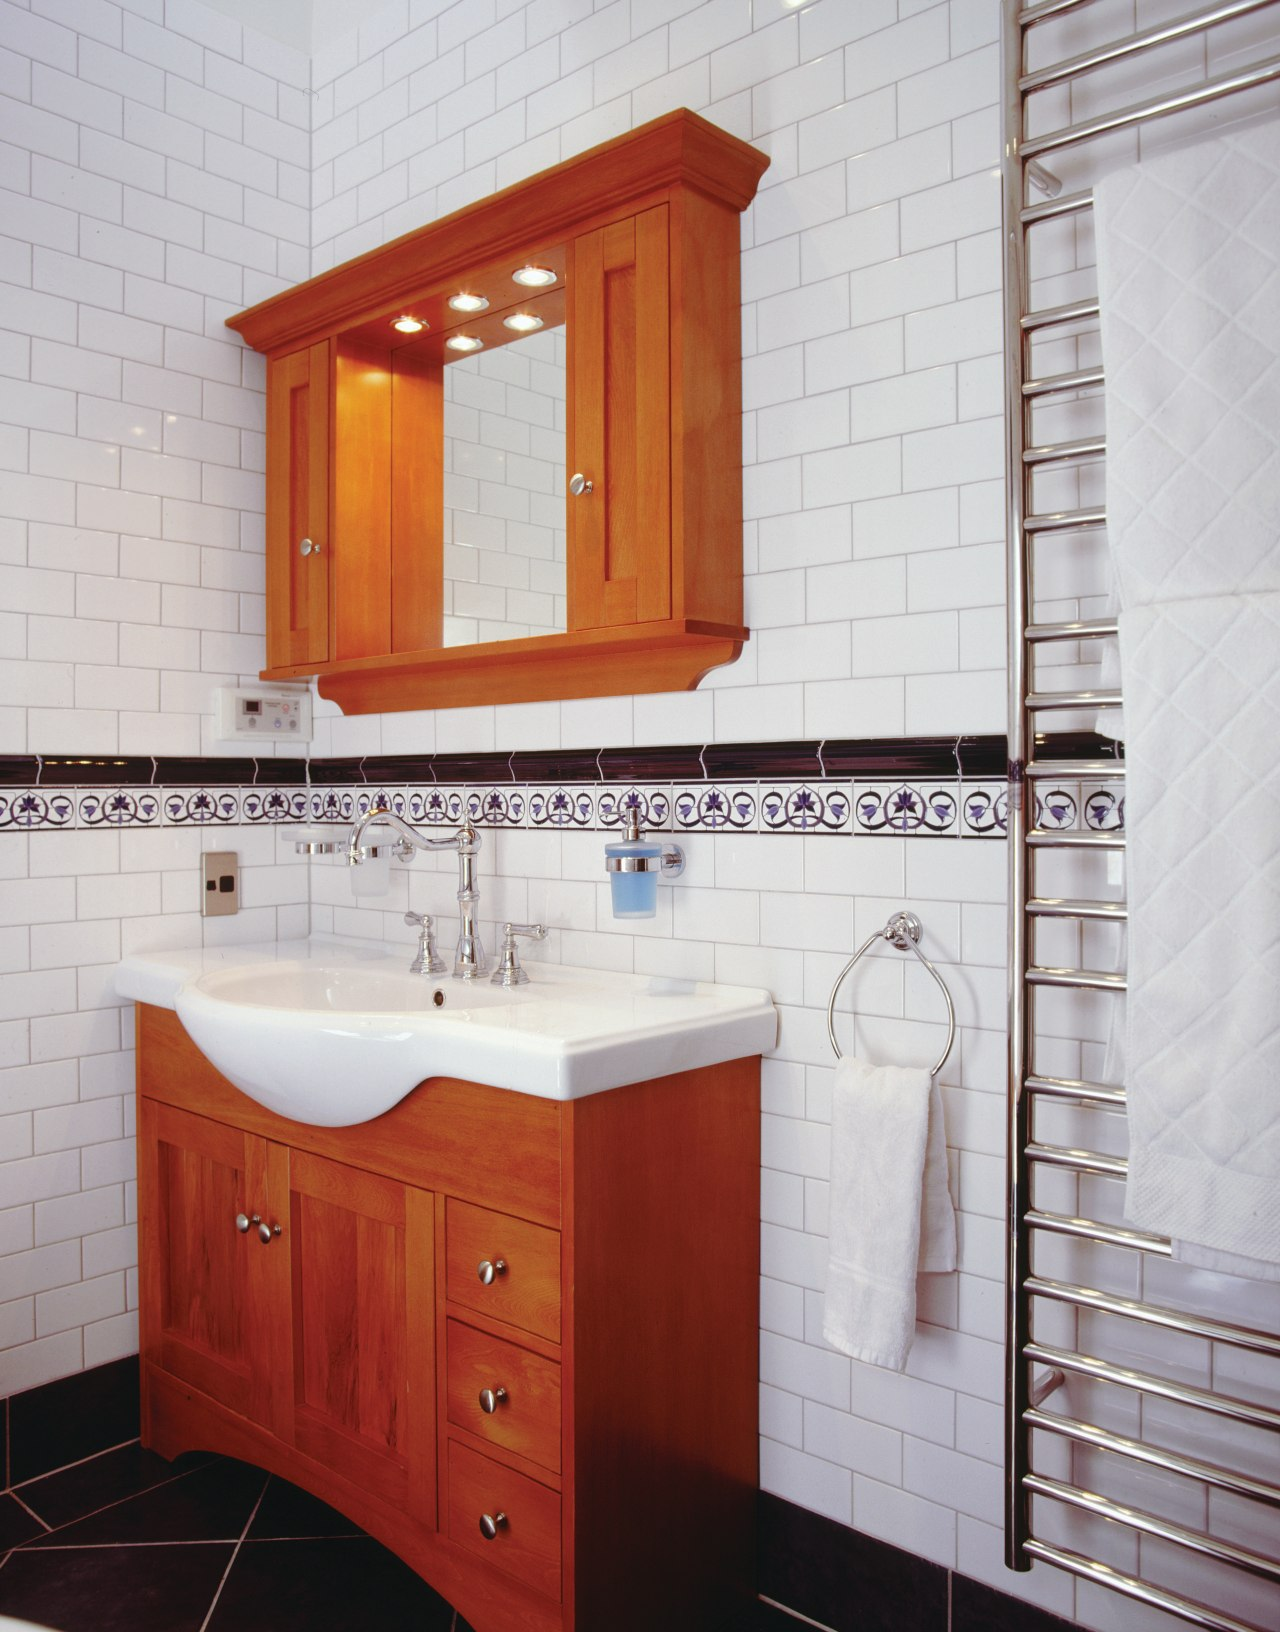 A view of some bathroomware from Plumb-Line. bathroom, bathroom accessory, bathroom cabinet, cabinetry, floor, home, interior design, room, tile, wall, wood stain, gray